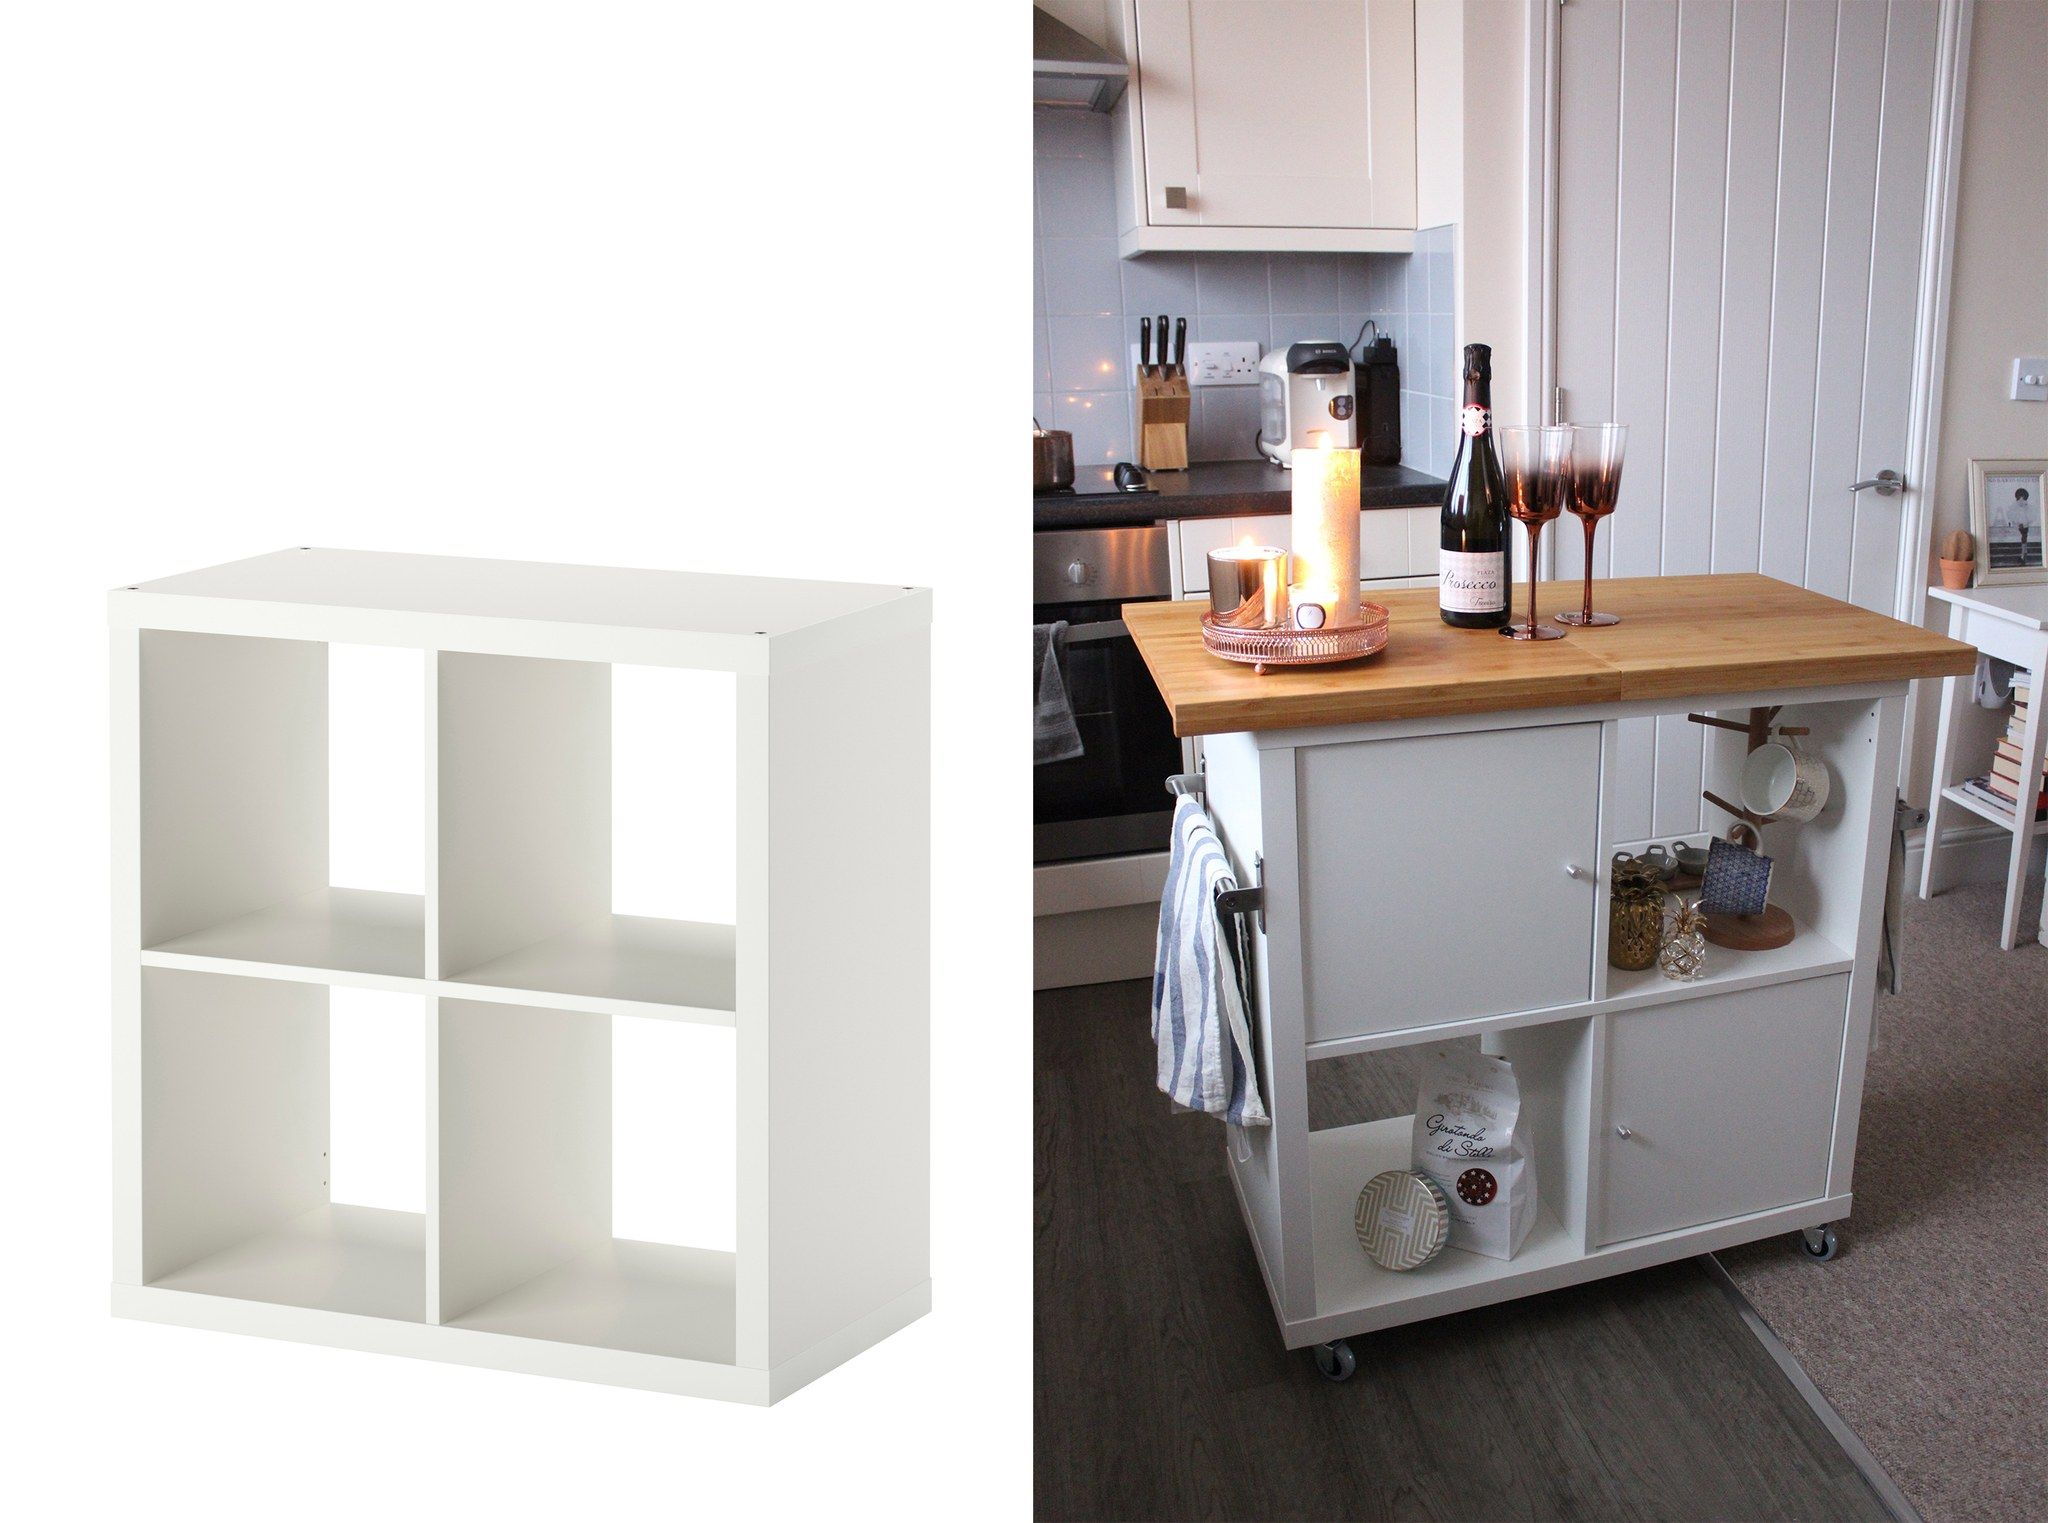 Get Ikea Kitchen Hacks To Make A Kitchen Island, Pantry,